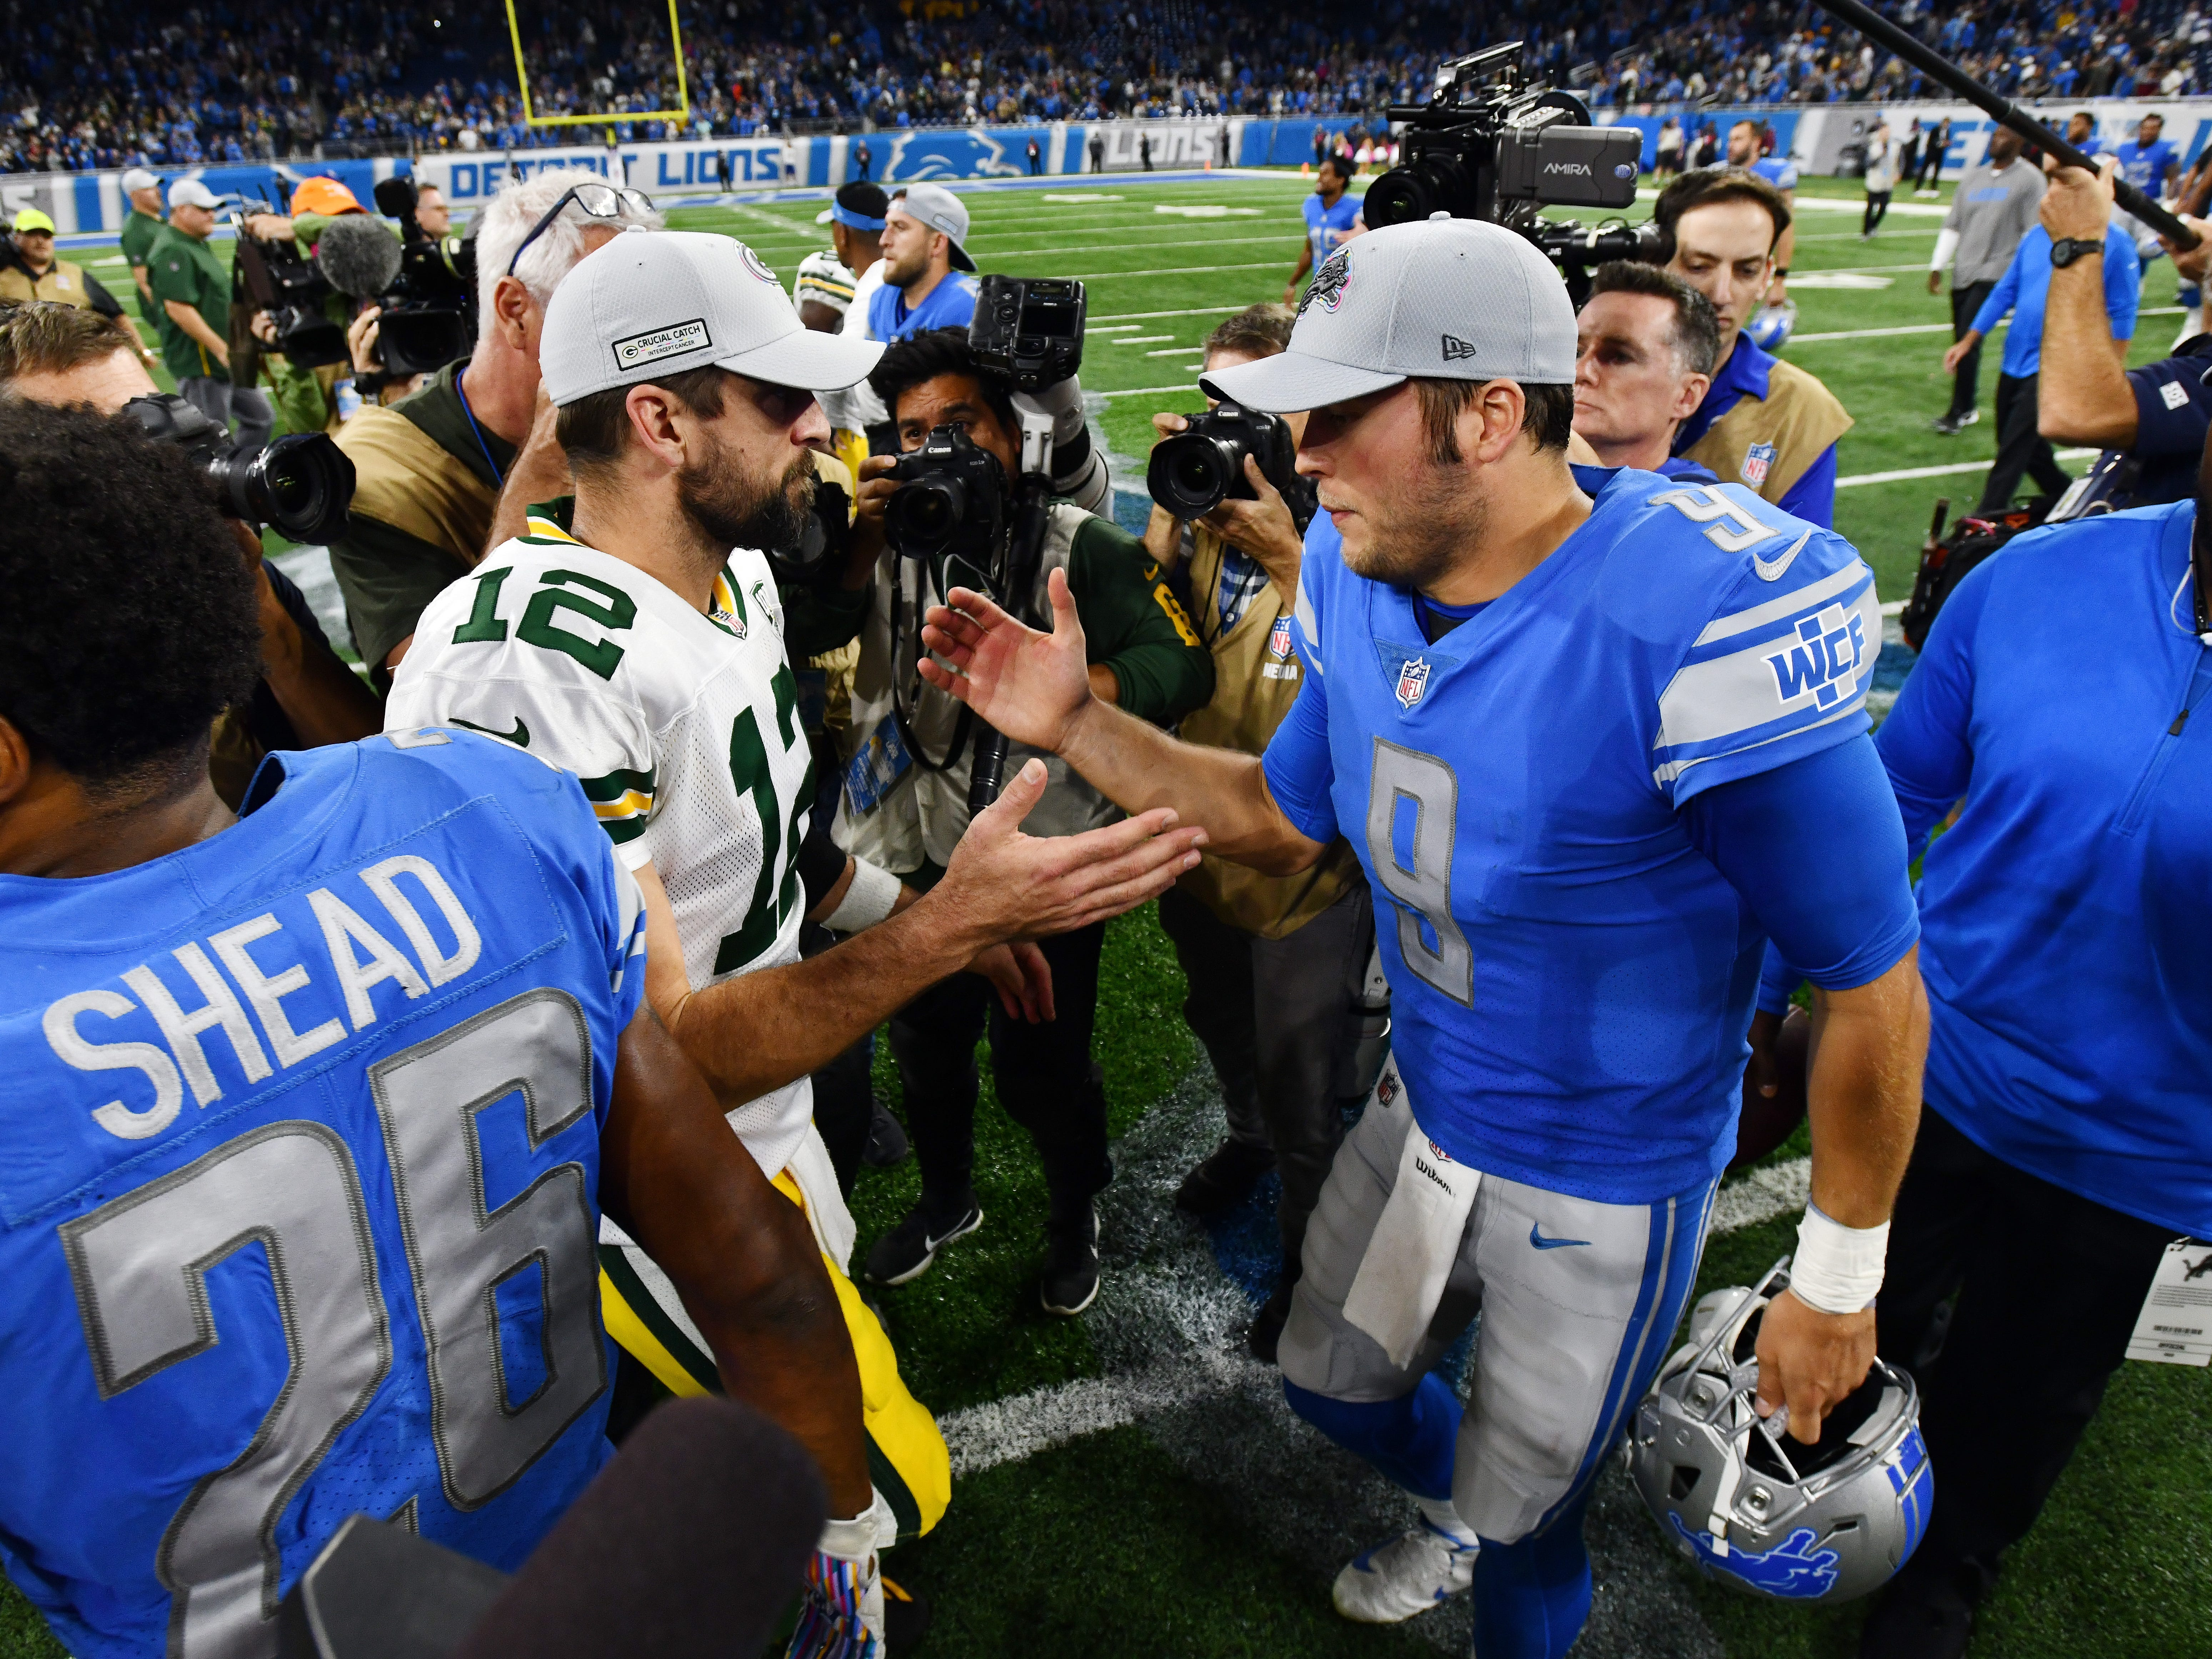 Packers quarterback Aaron Rodgers and Lions quarterback Matthew Stafford meet on the field after the 31-23 Detroit victory.